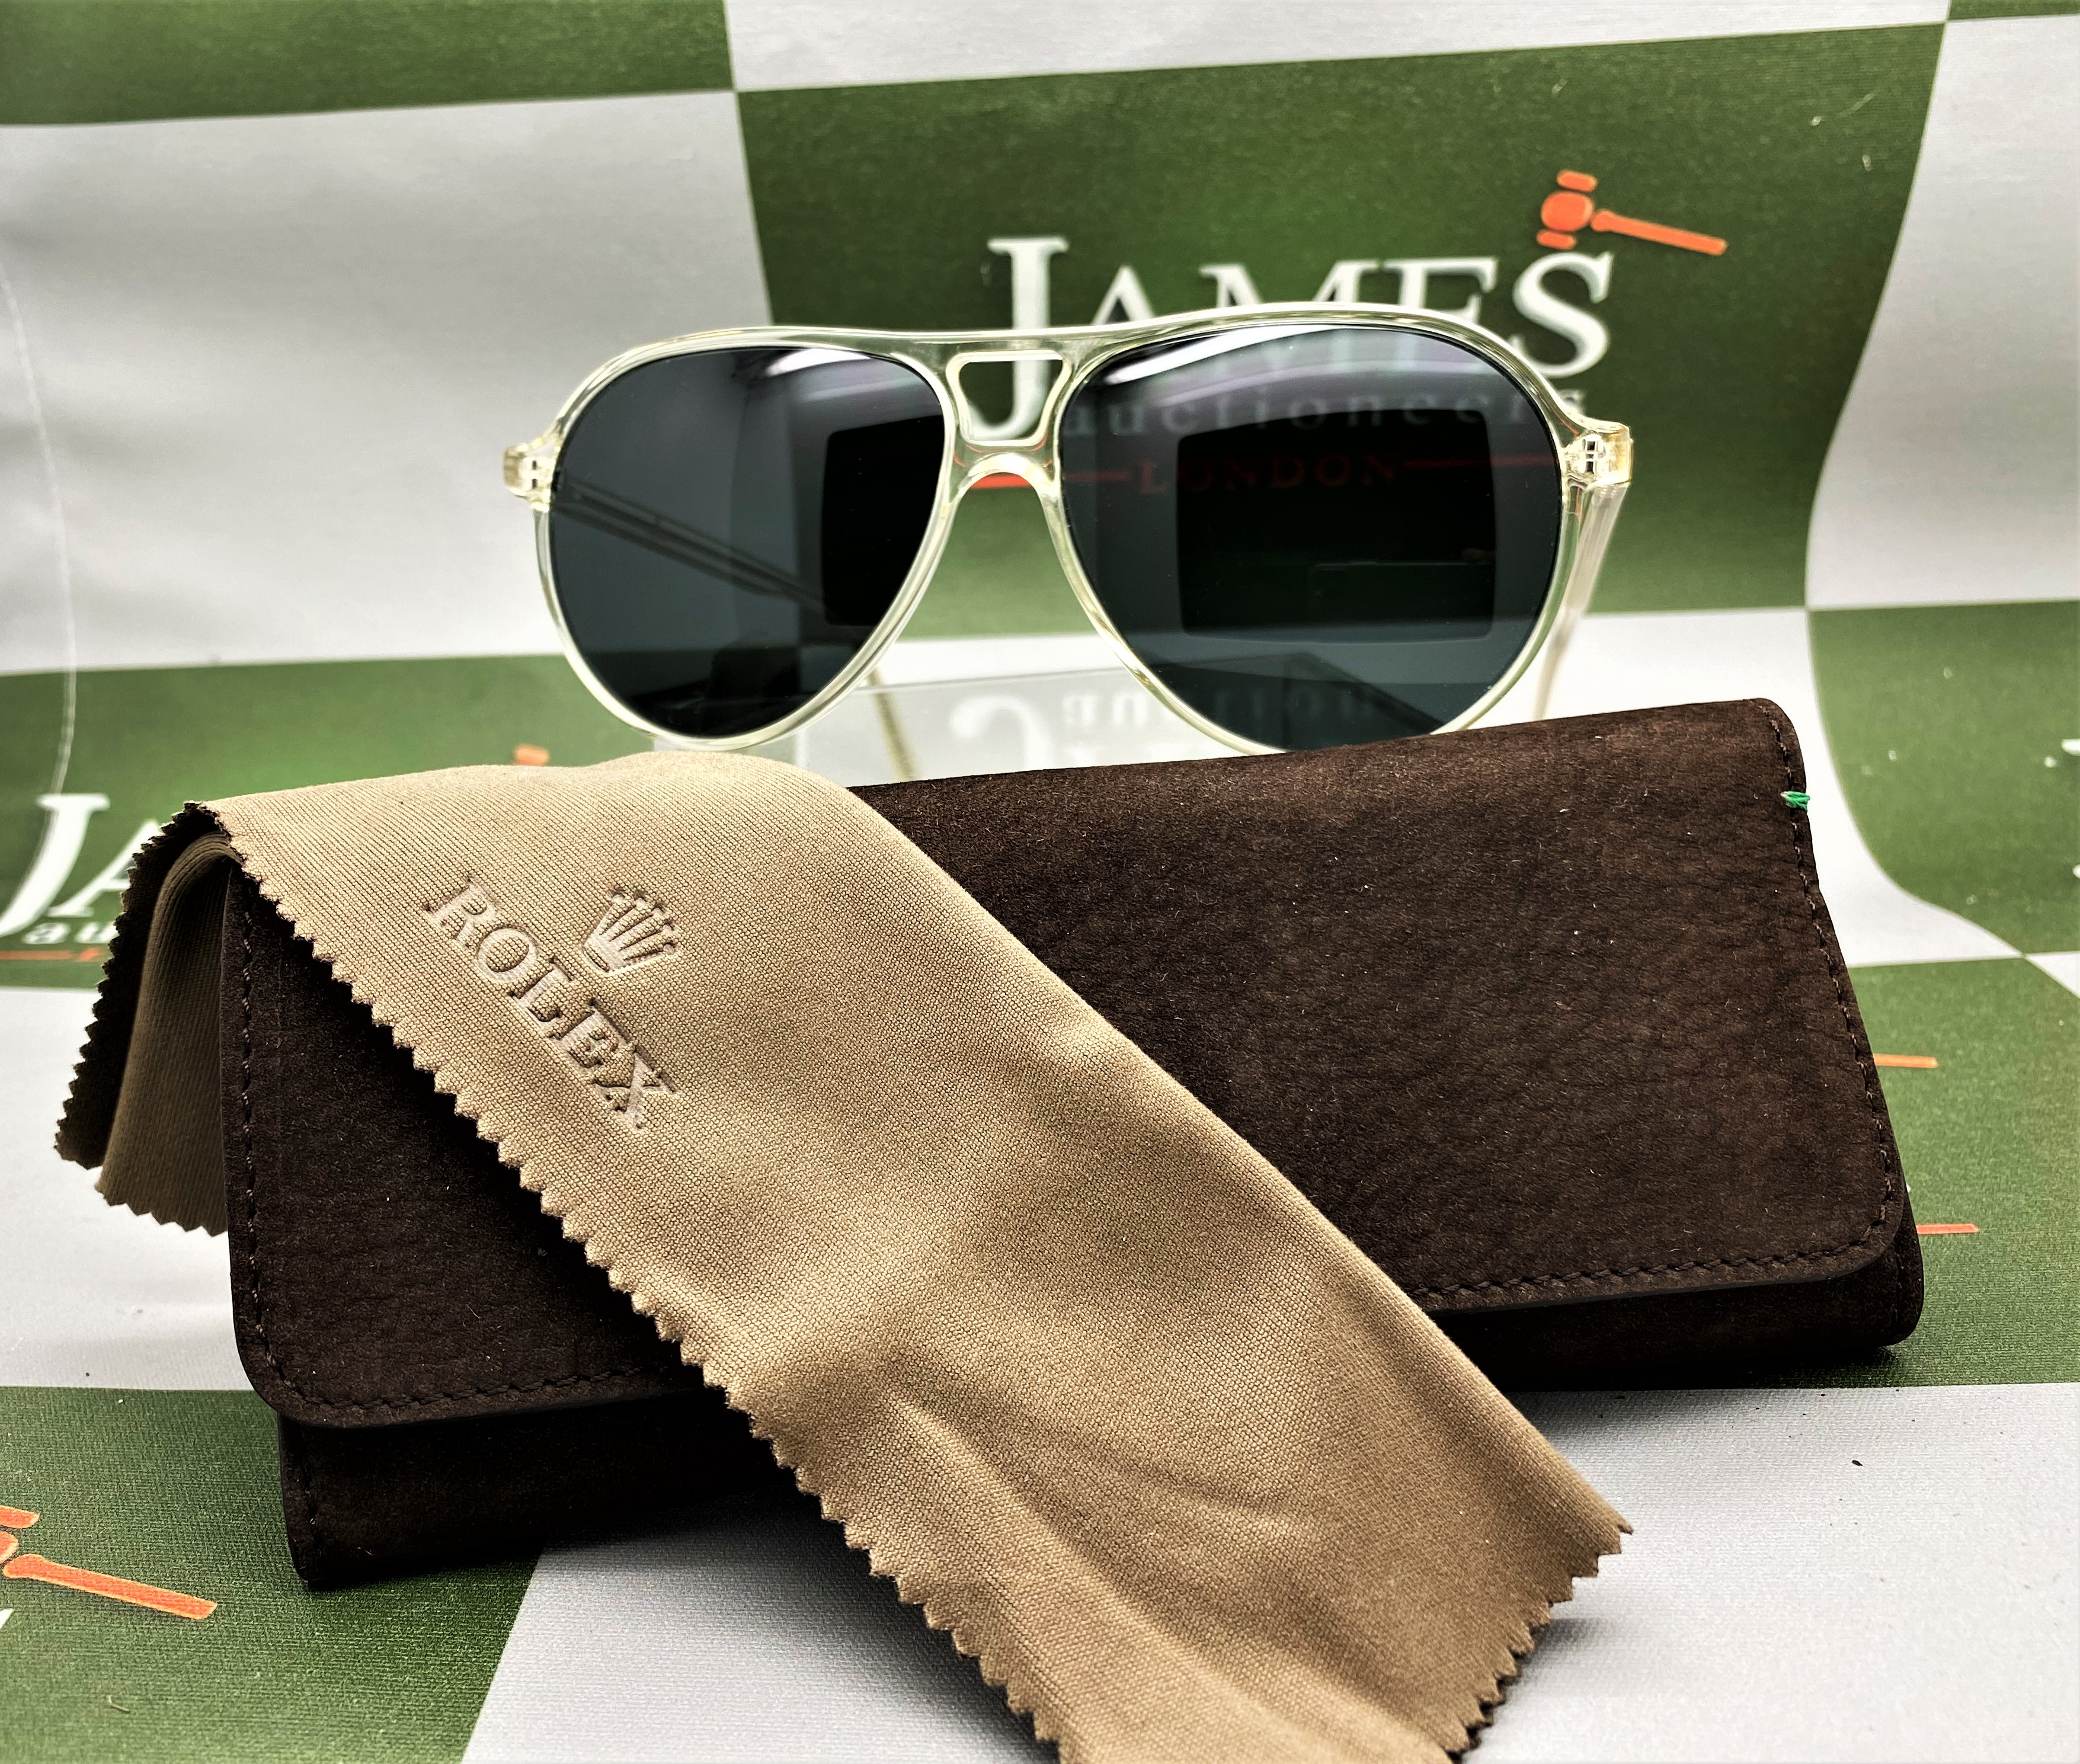 Rolex Official Merchandise Sunglasses-New Examples, Very Rare. - Image 7 of 7